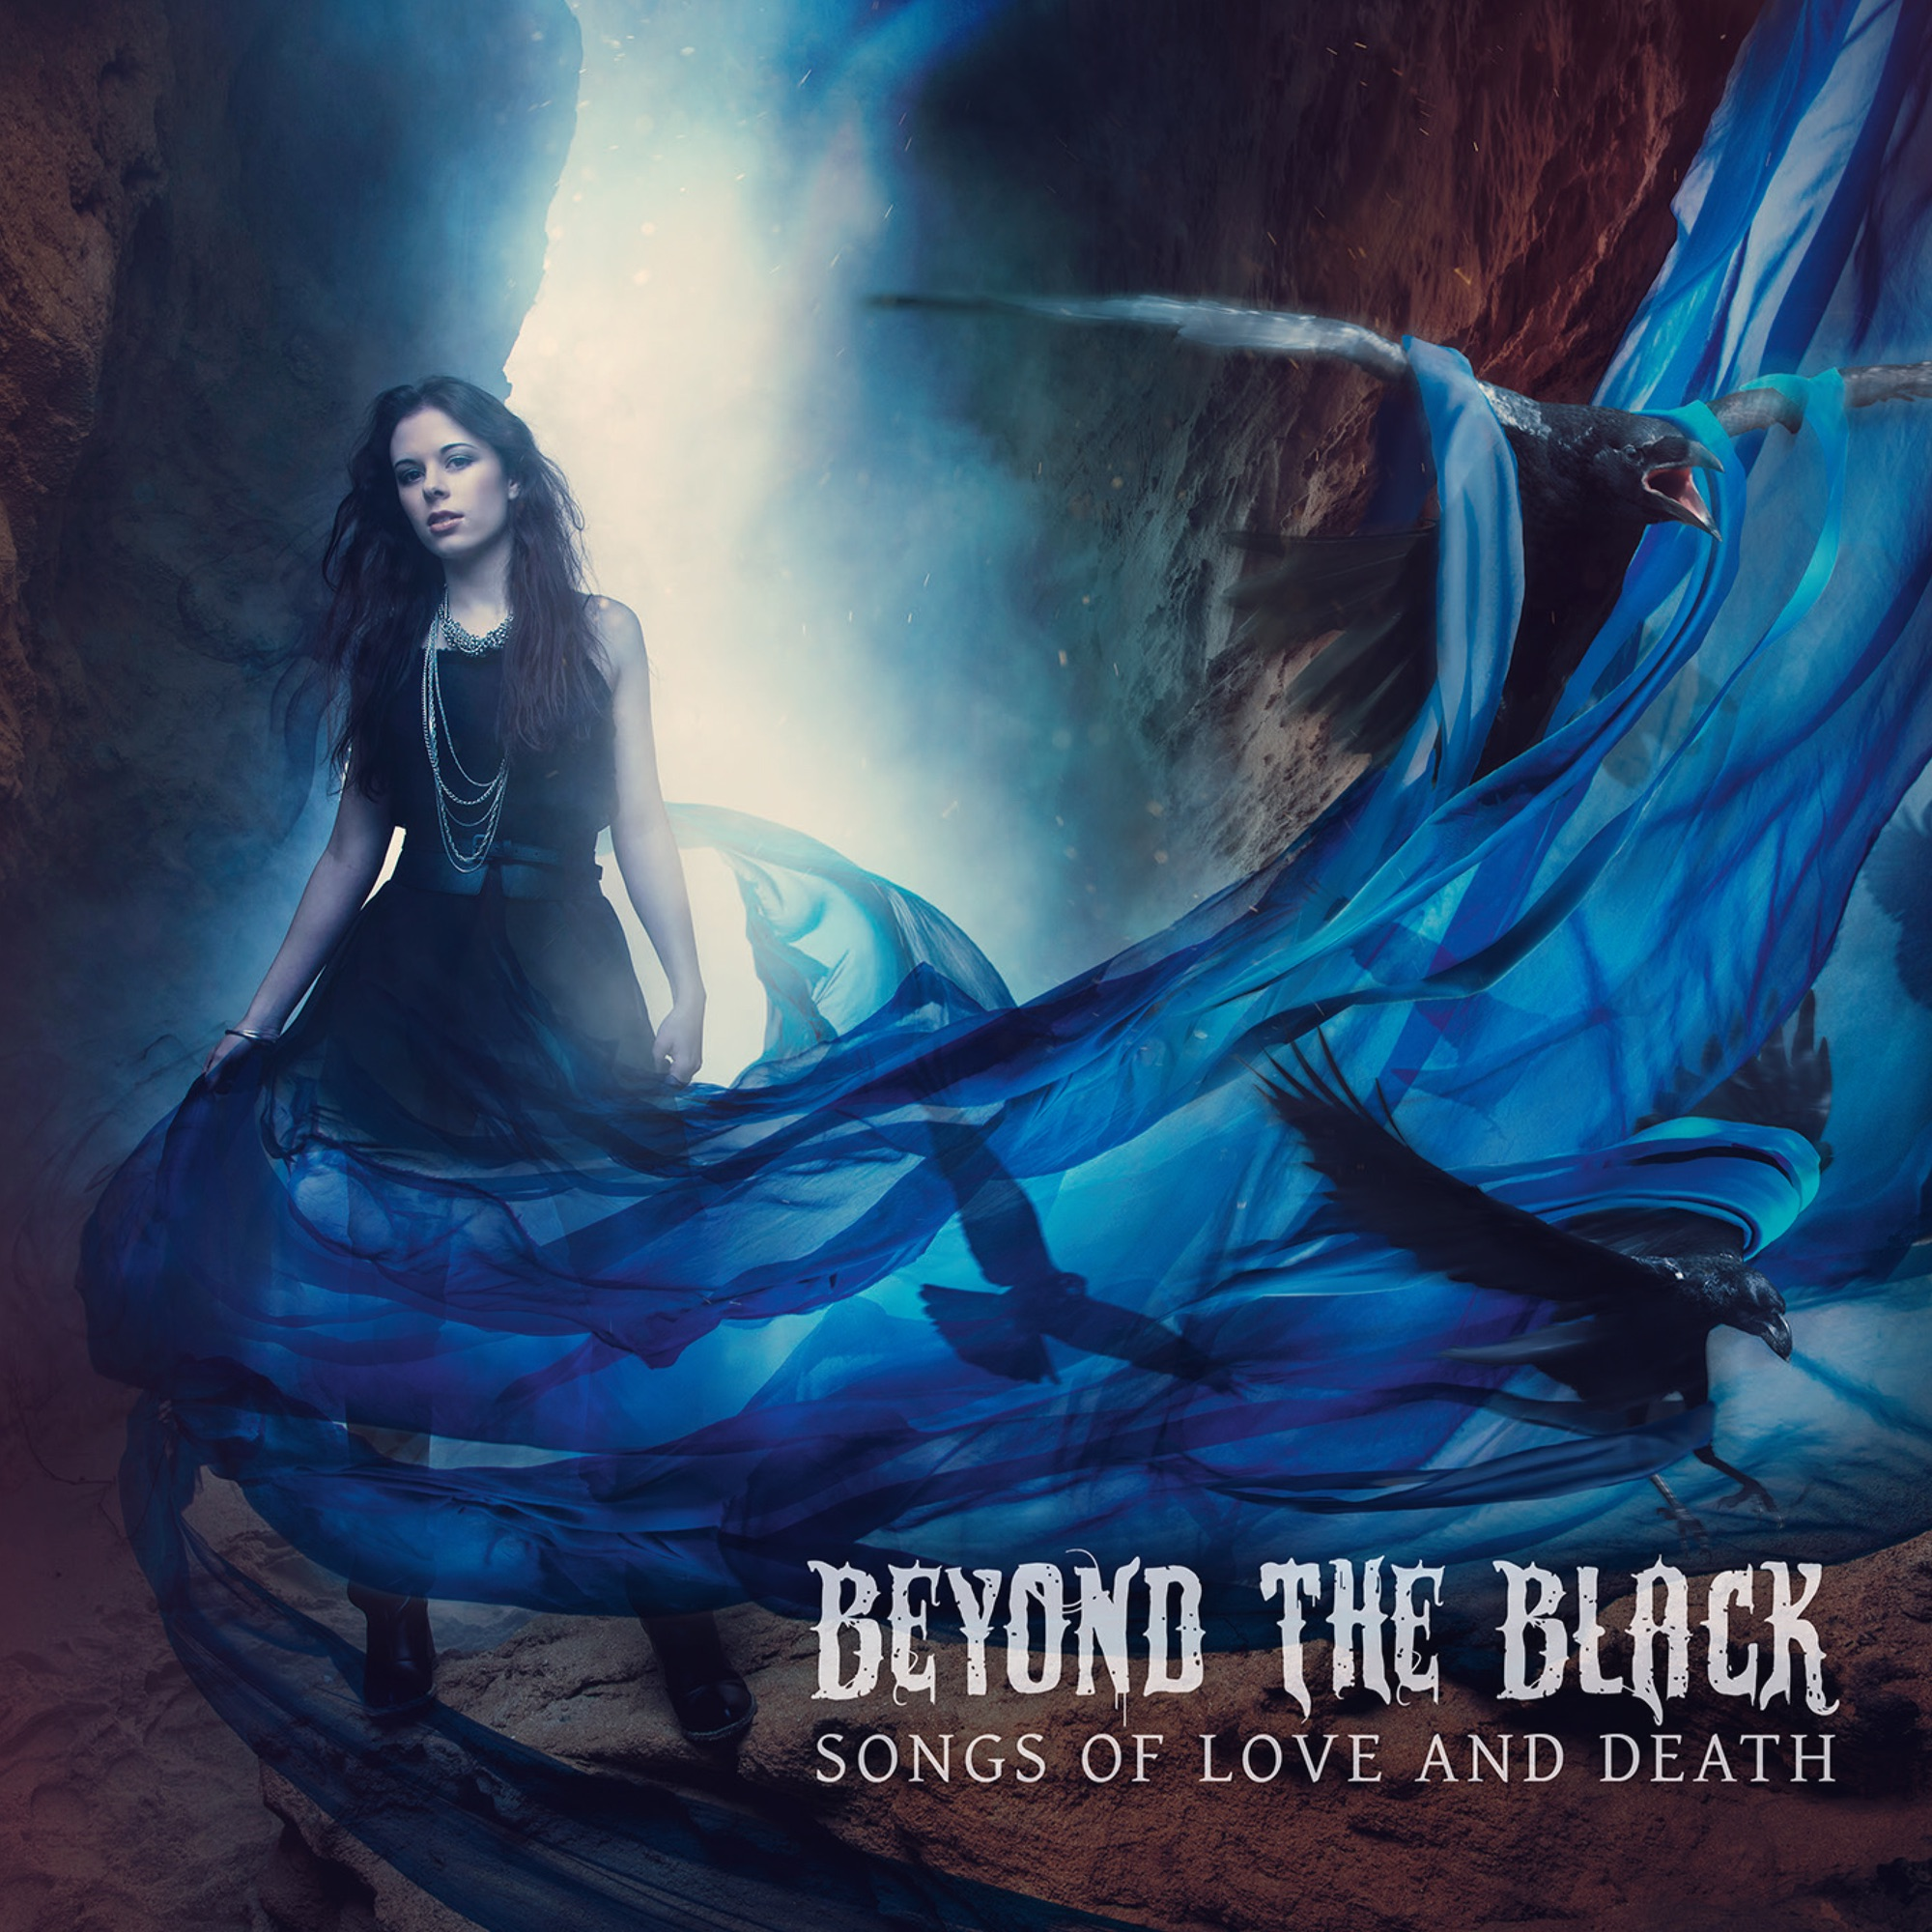 Beyond The Black - In the Shadows, Unbroken